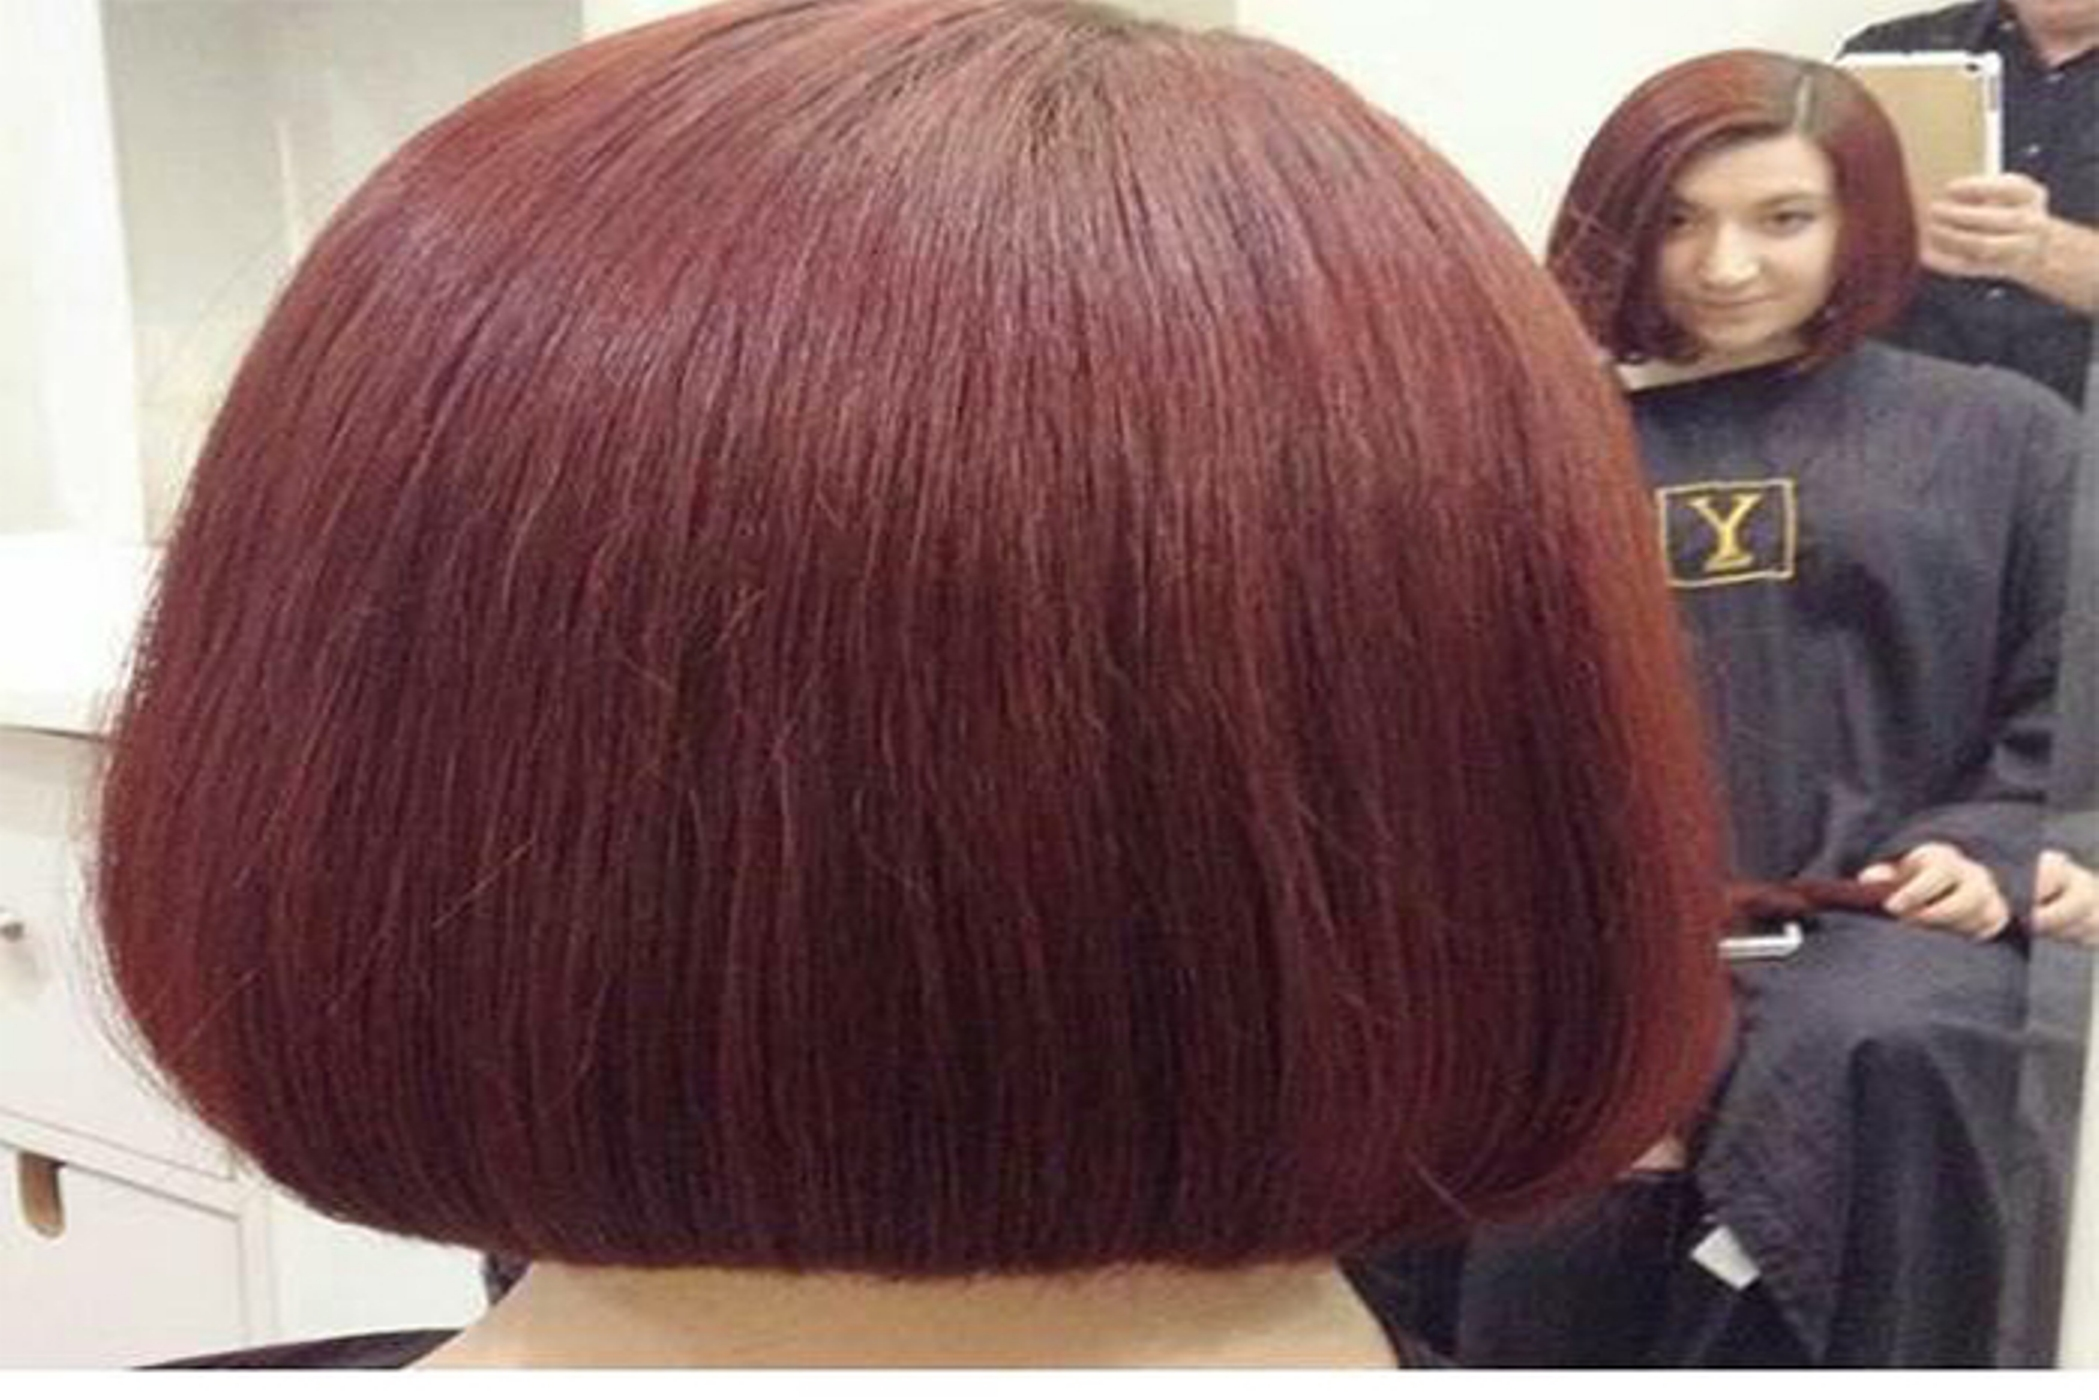 we see the back of woman's head withshiny bob, as she looks into the mirror to see her new haircut